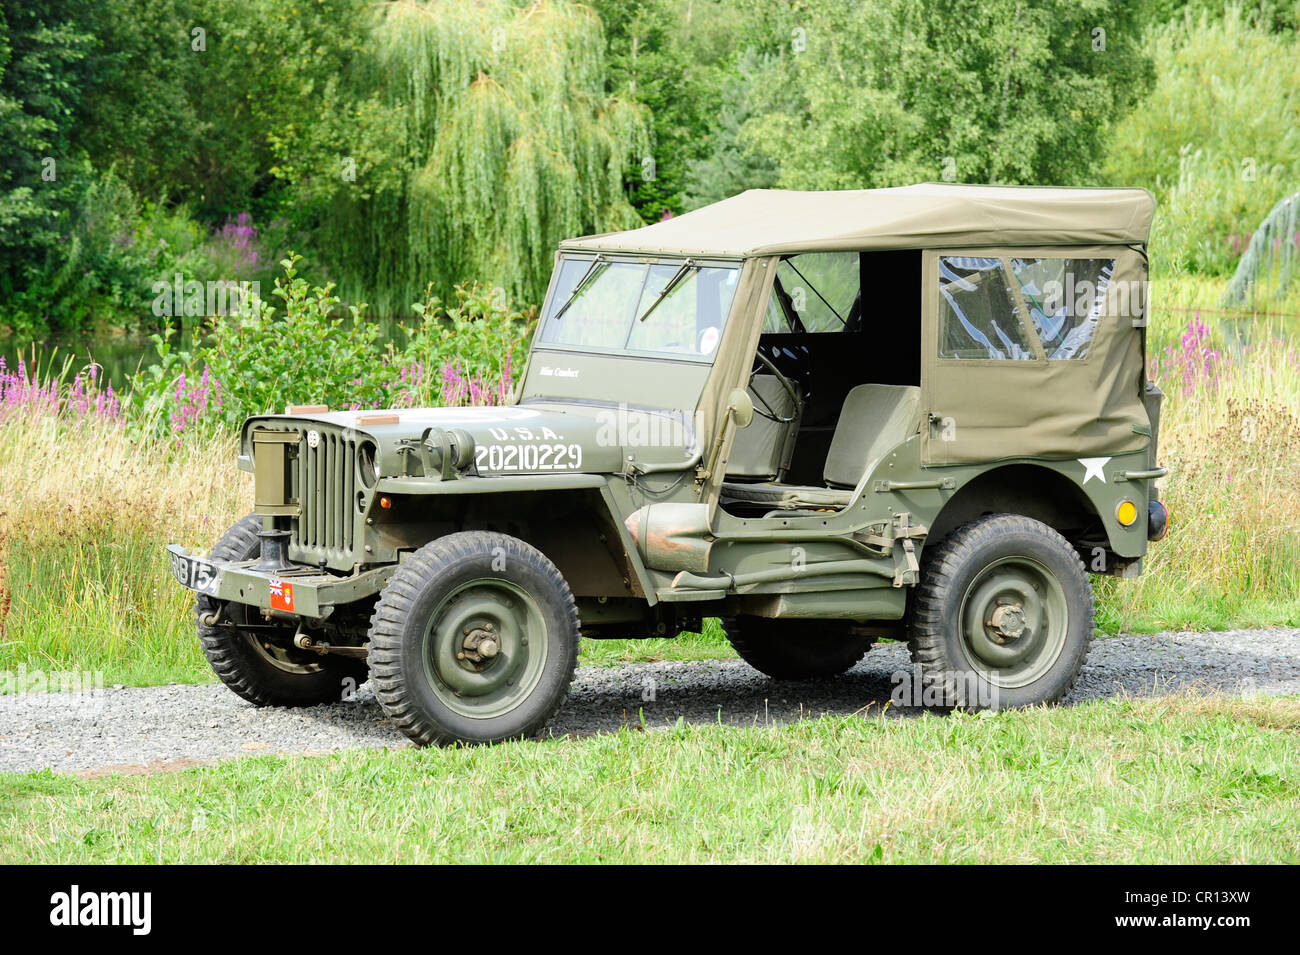 Willys Jeep Stock Photos Images Alamy 1953 Military 1945 In Usa Trim Image